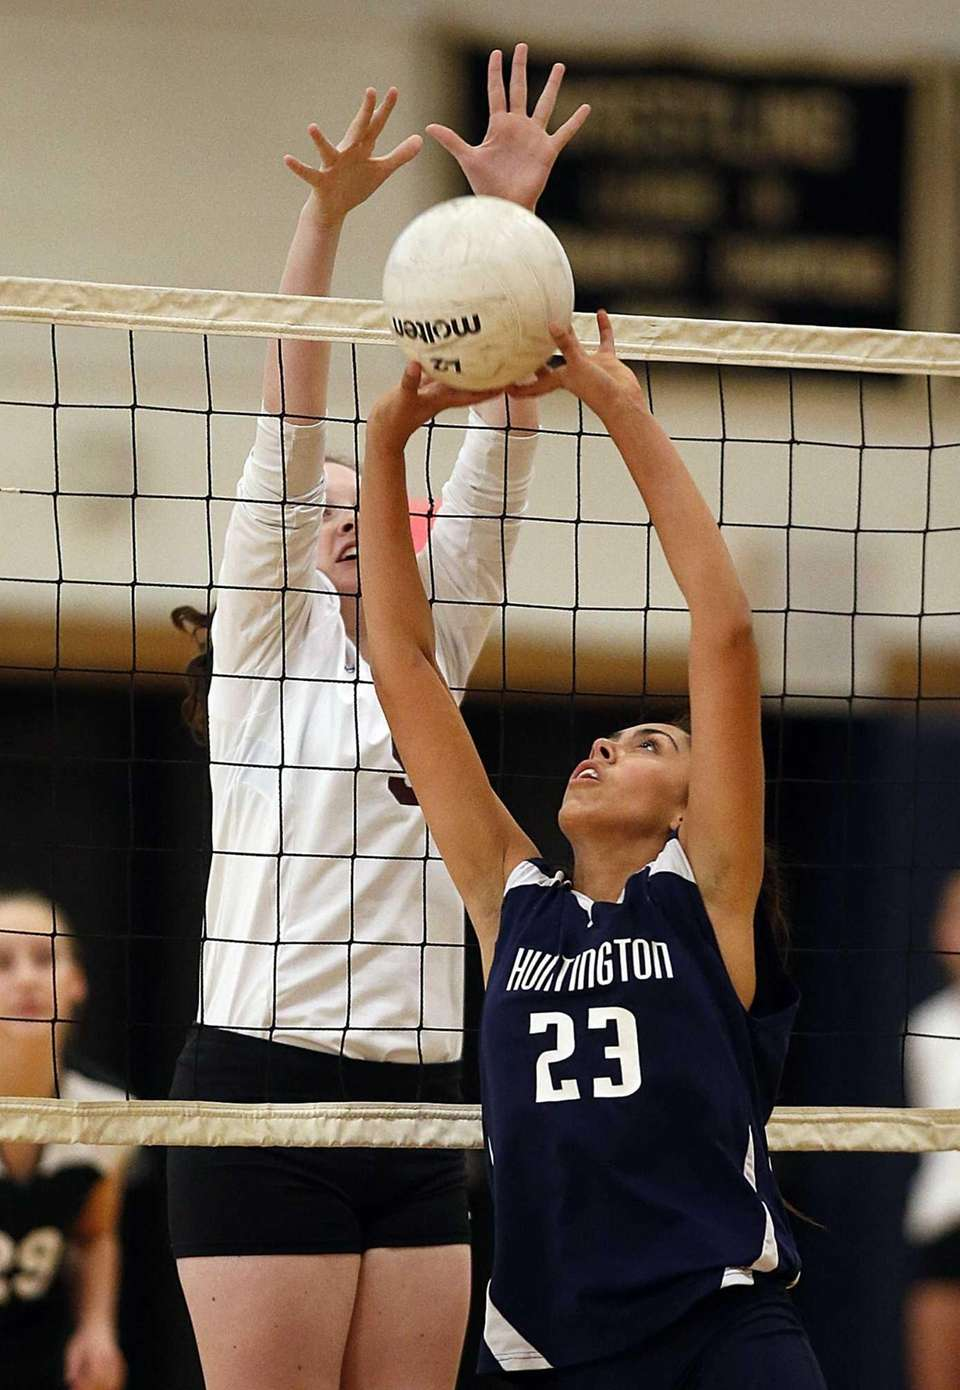 Huntinton's Cynthia Gowani sets the ball at the